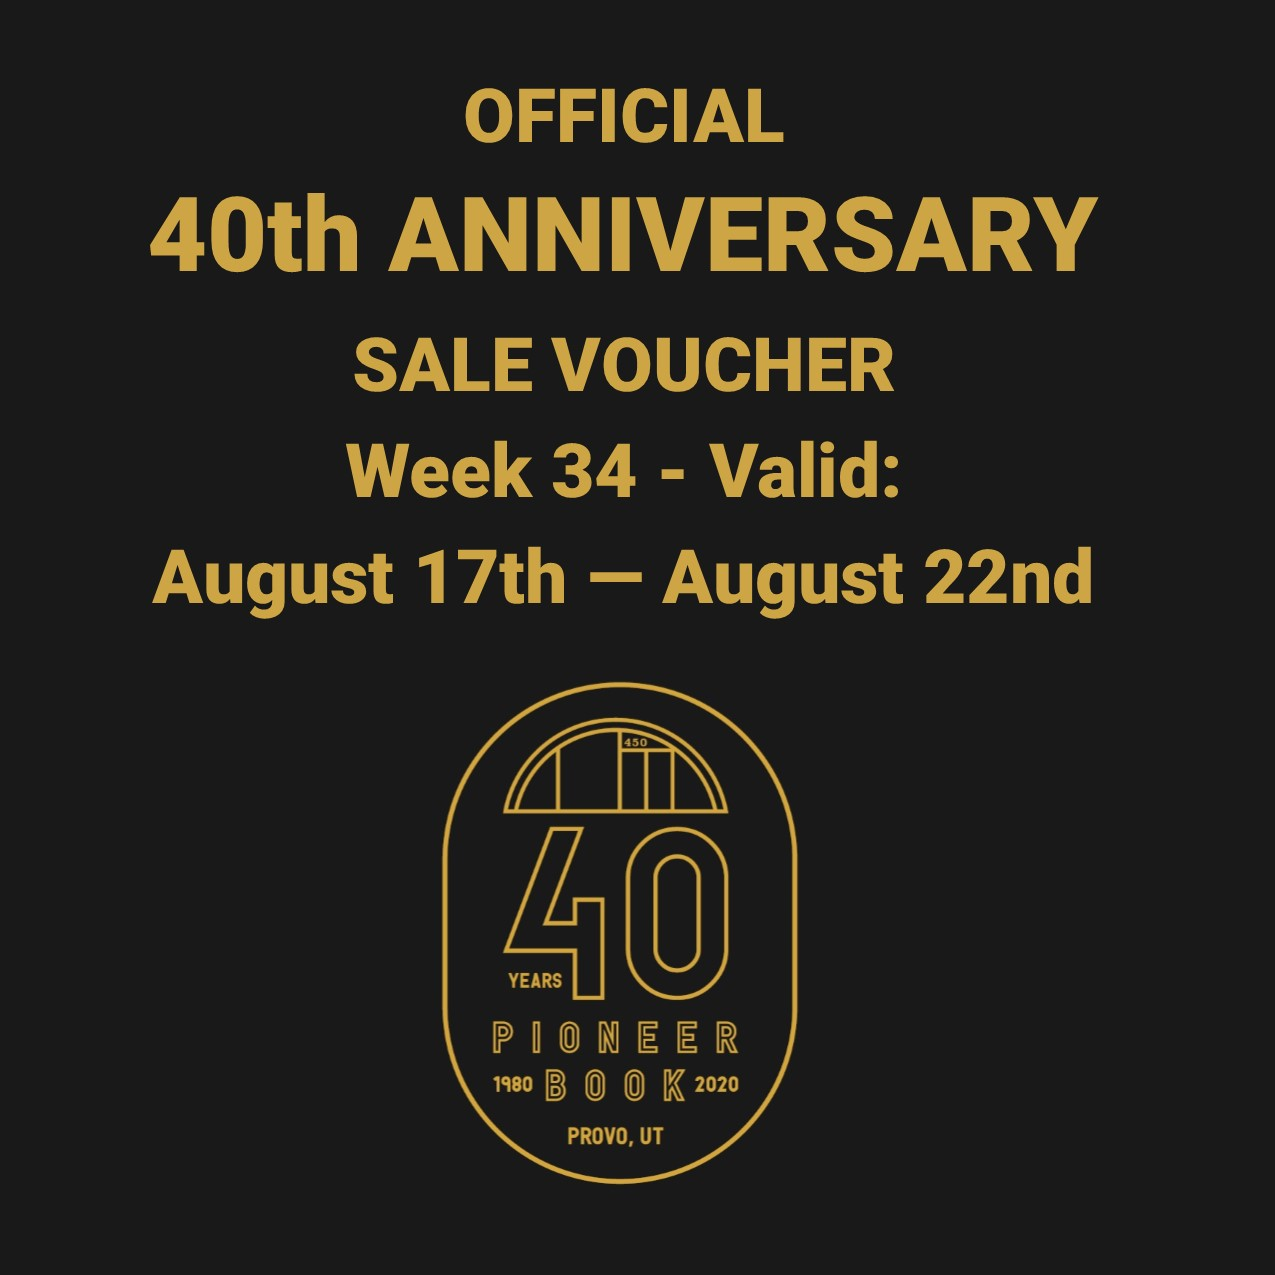 Image for 40th Anniversary Sale! Voucher - Week 34: August 17th - August 22nd